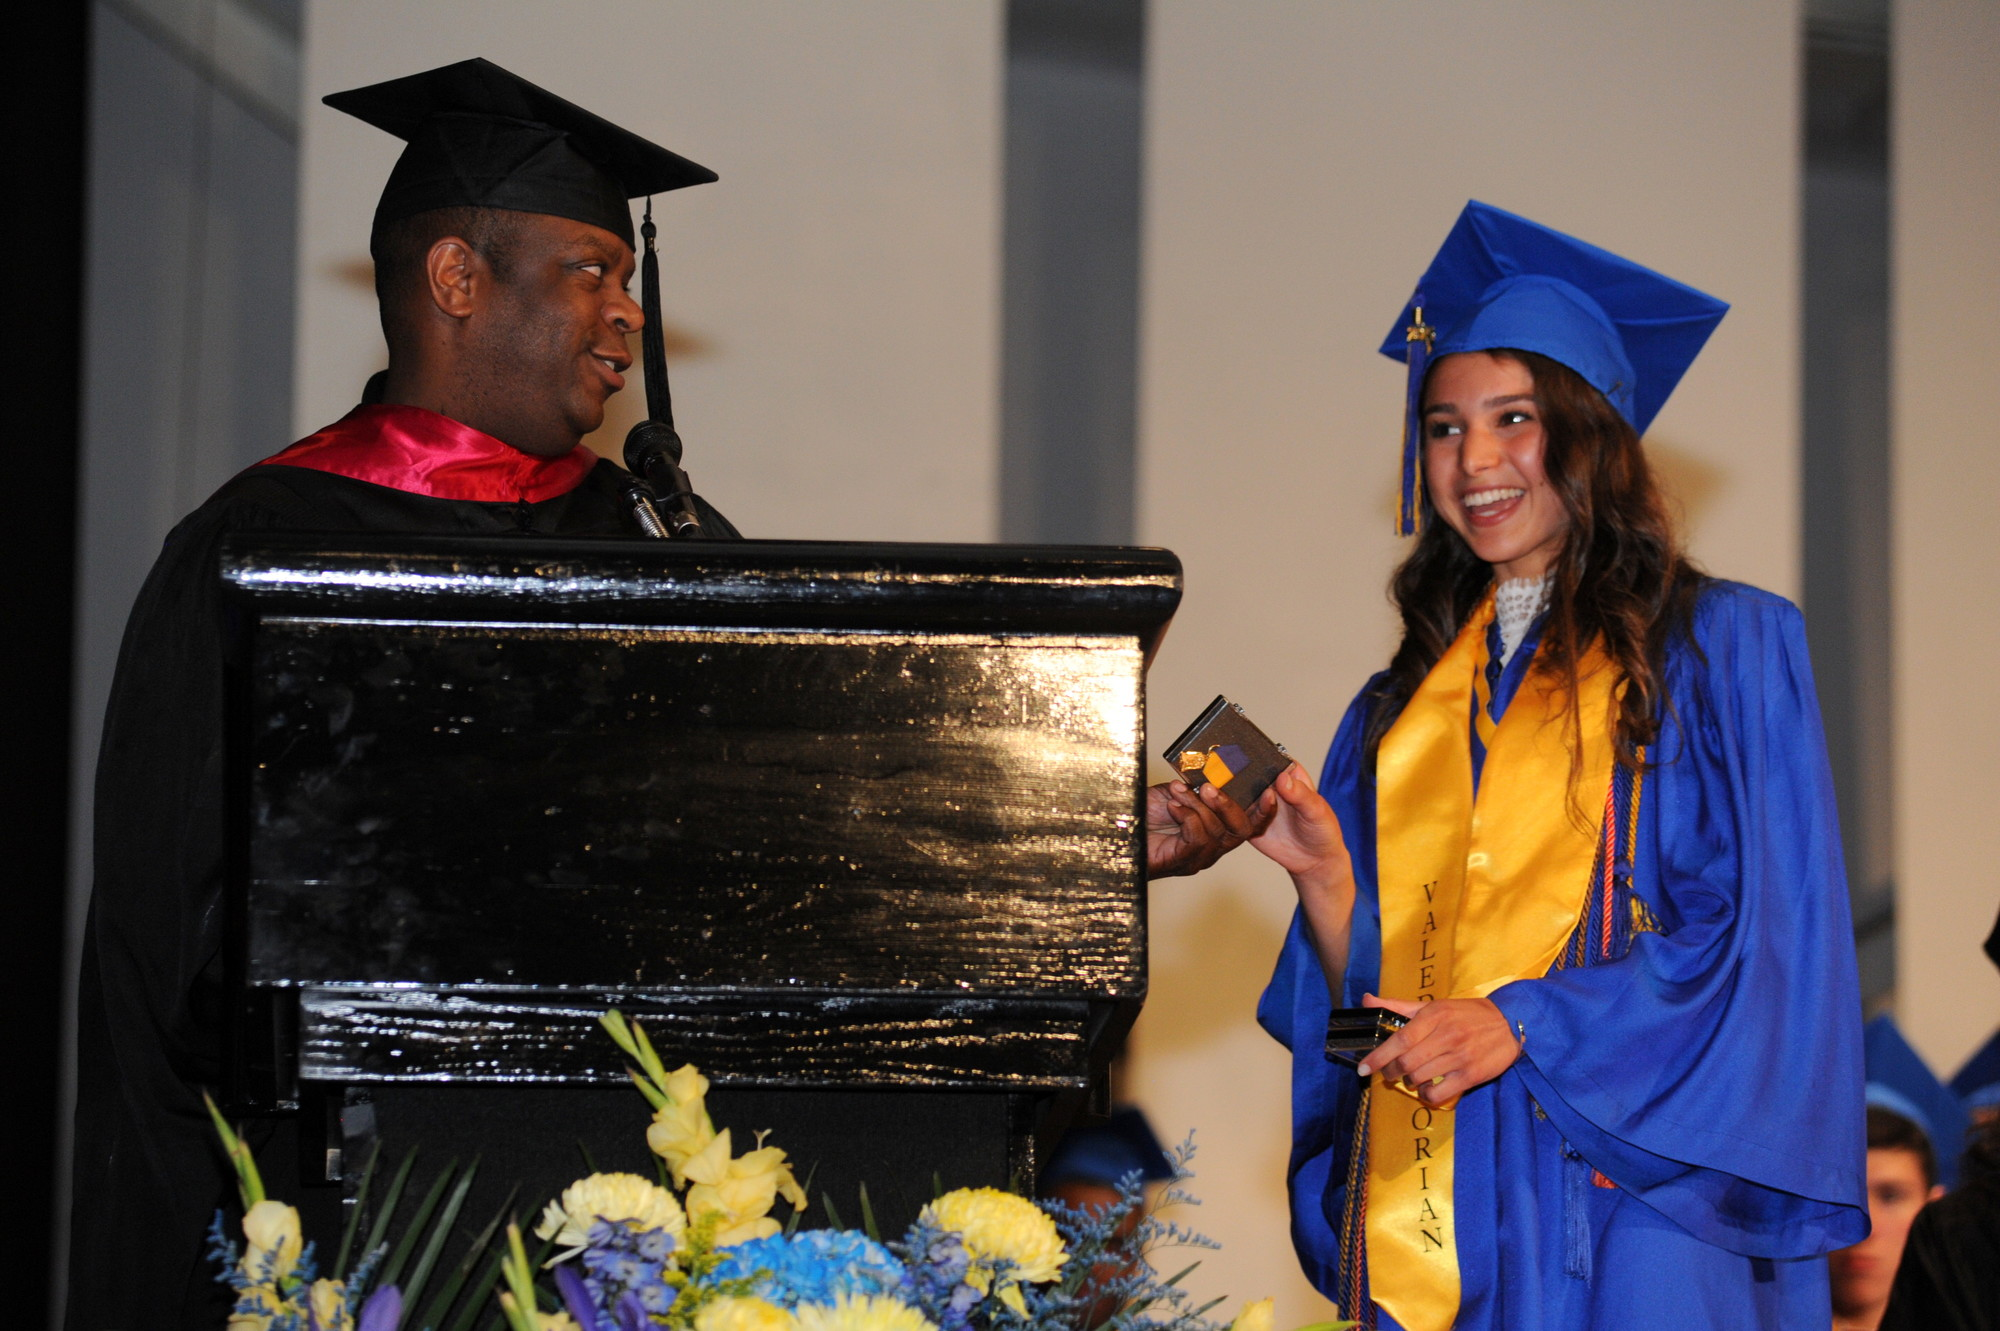 Class of 2015 valedictorian Victoria DeCeglio was presented an award by Math and Science Chairman Bill Moss.